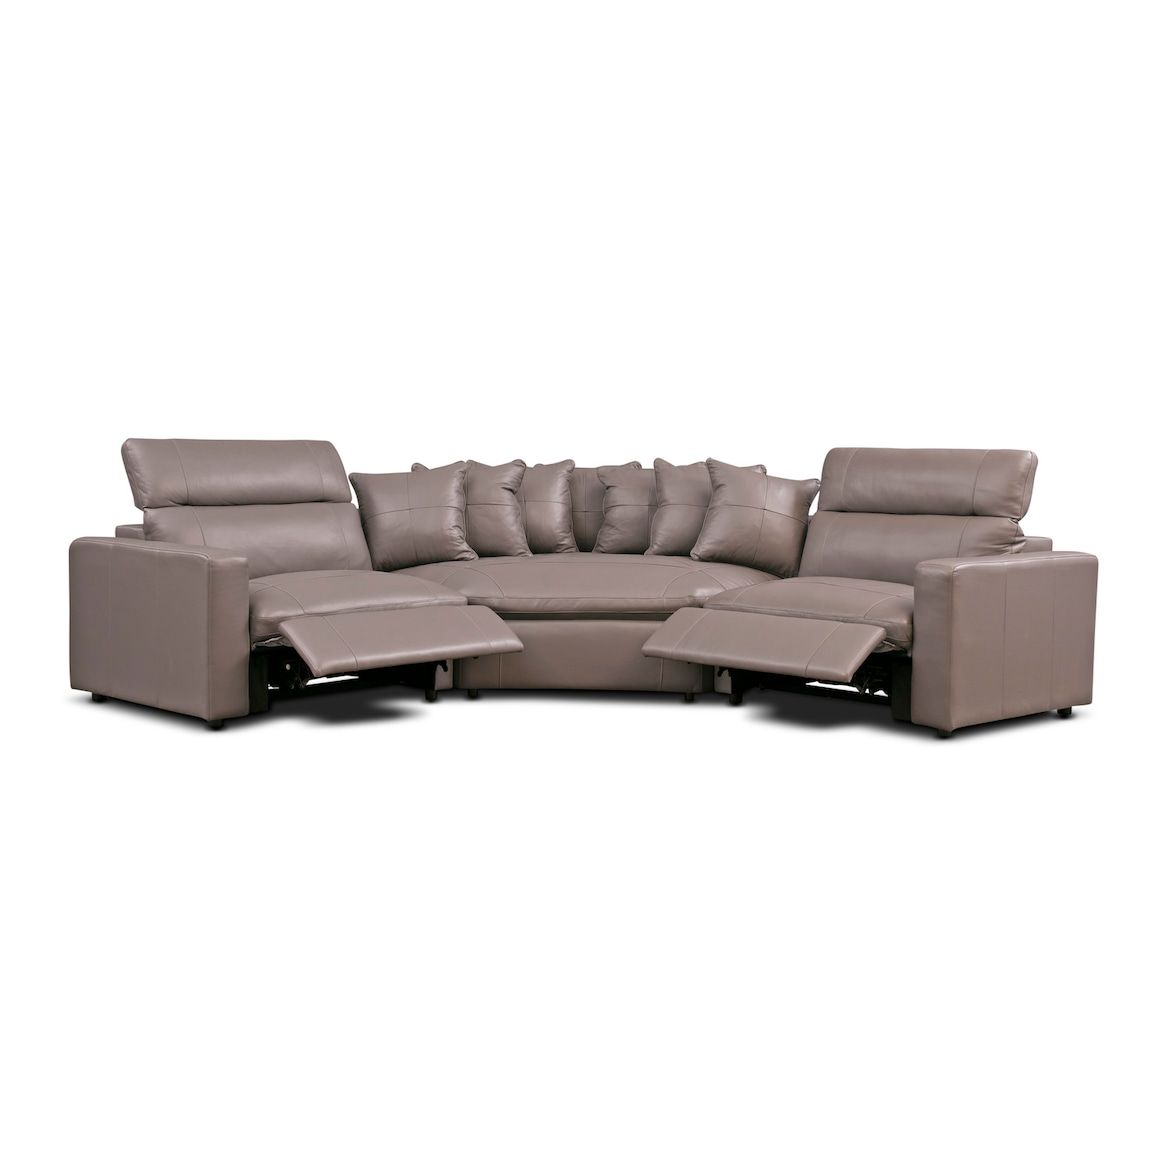 Best Happy 3 Piece Dual Power Reclining Sectional With Cuddler 640 x 480